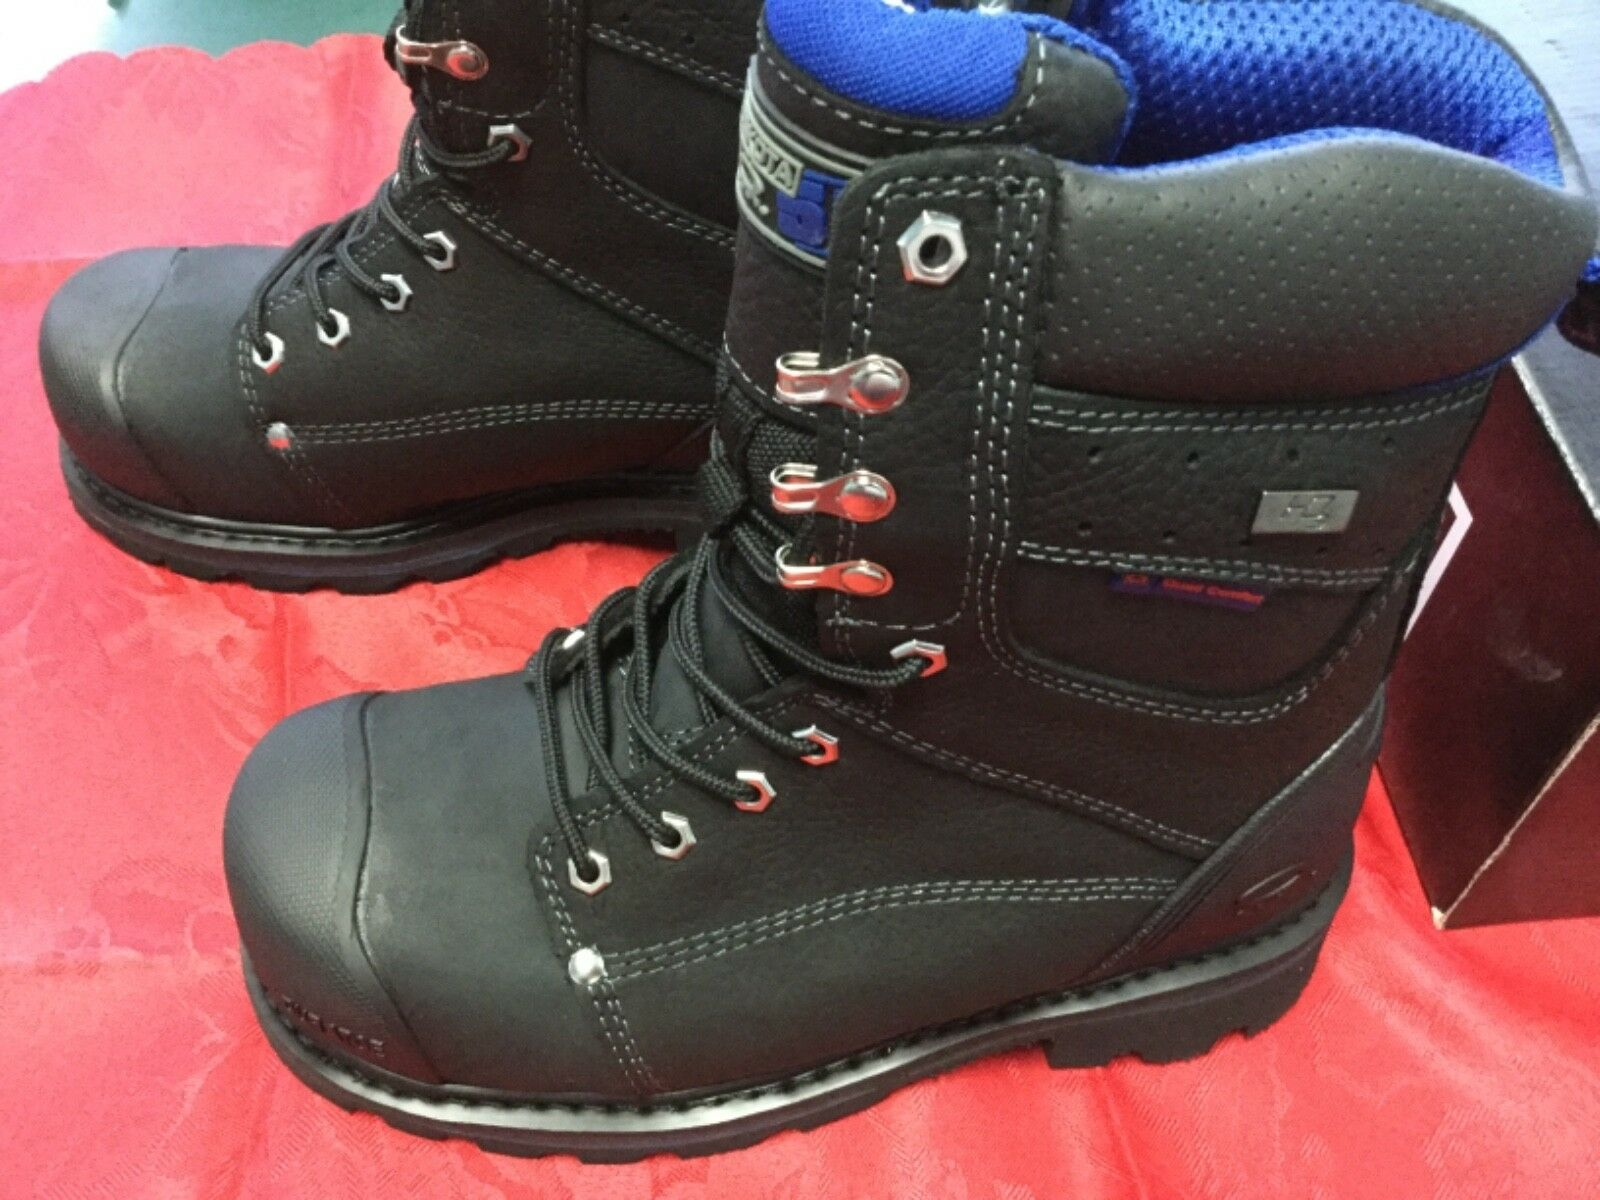 Dakota Men's safety boots 7.5 New In Box style 5ANADK3-8557